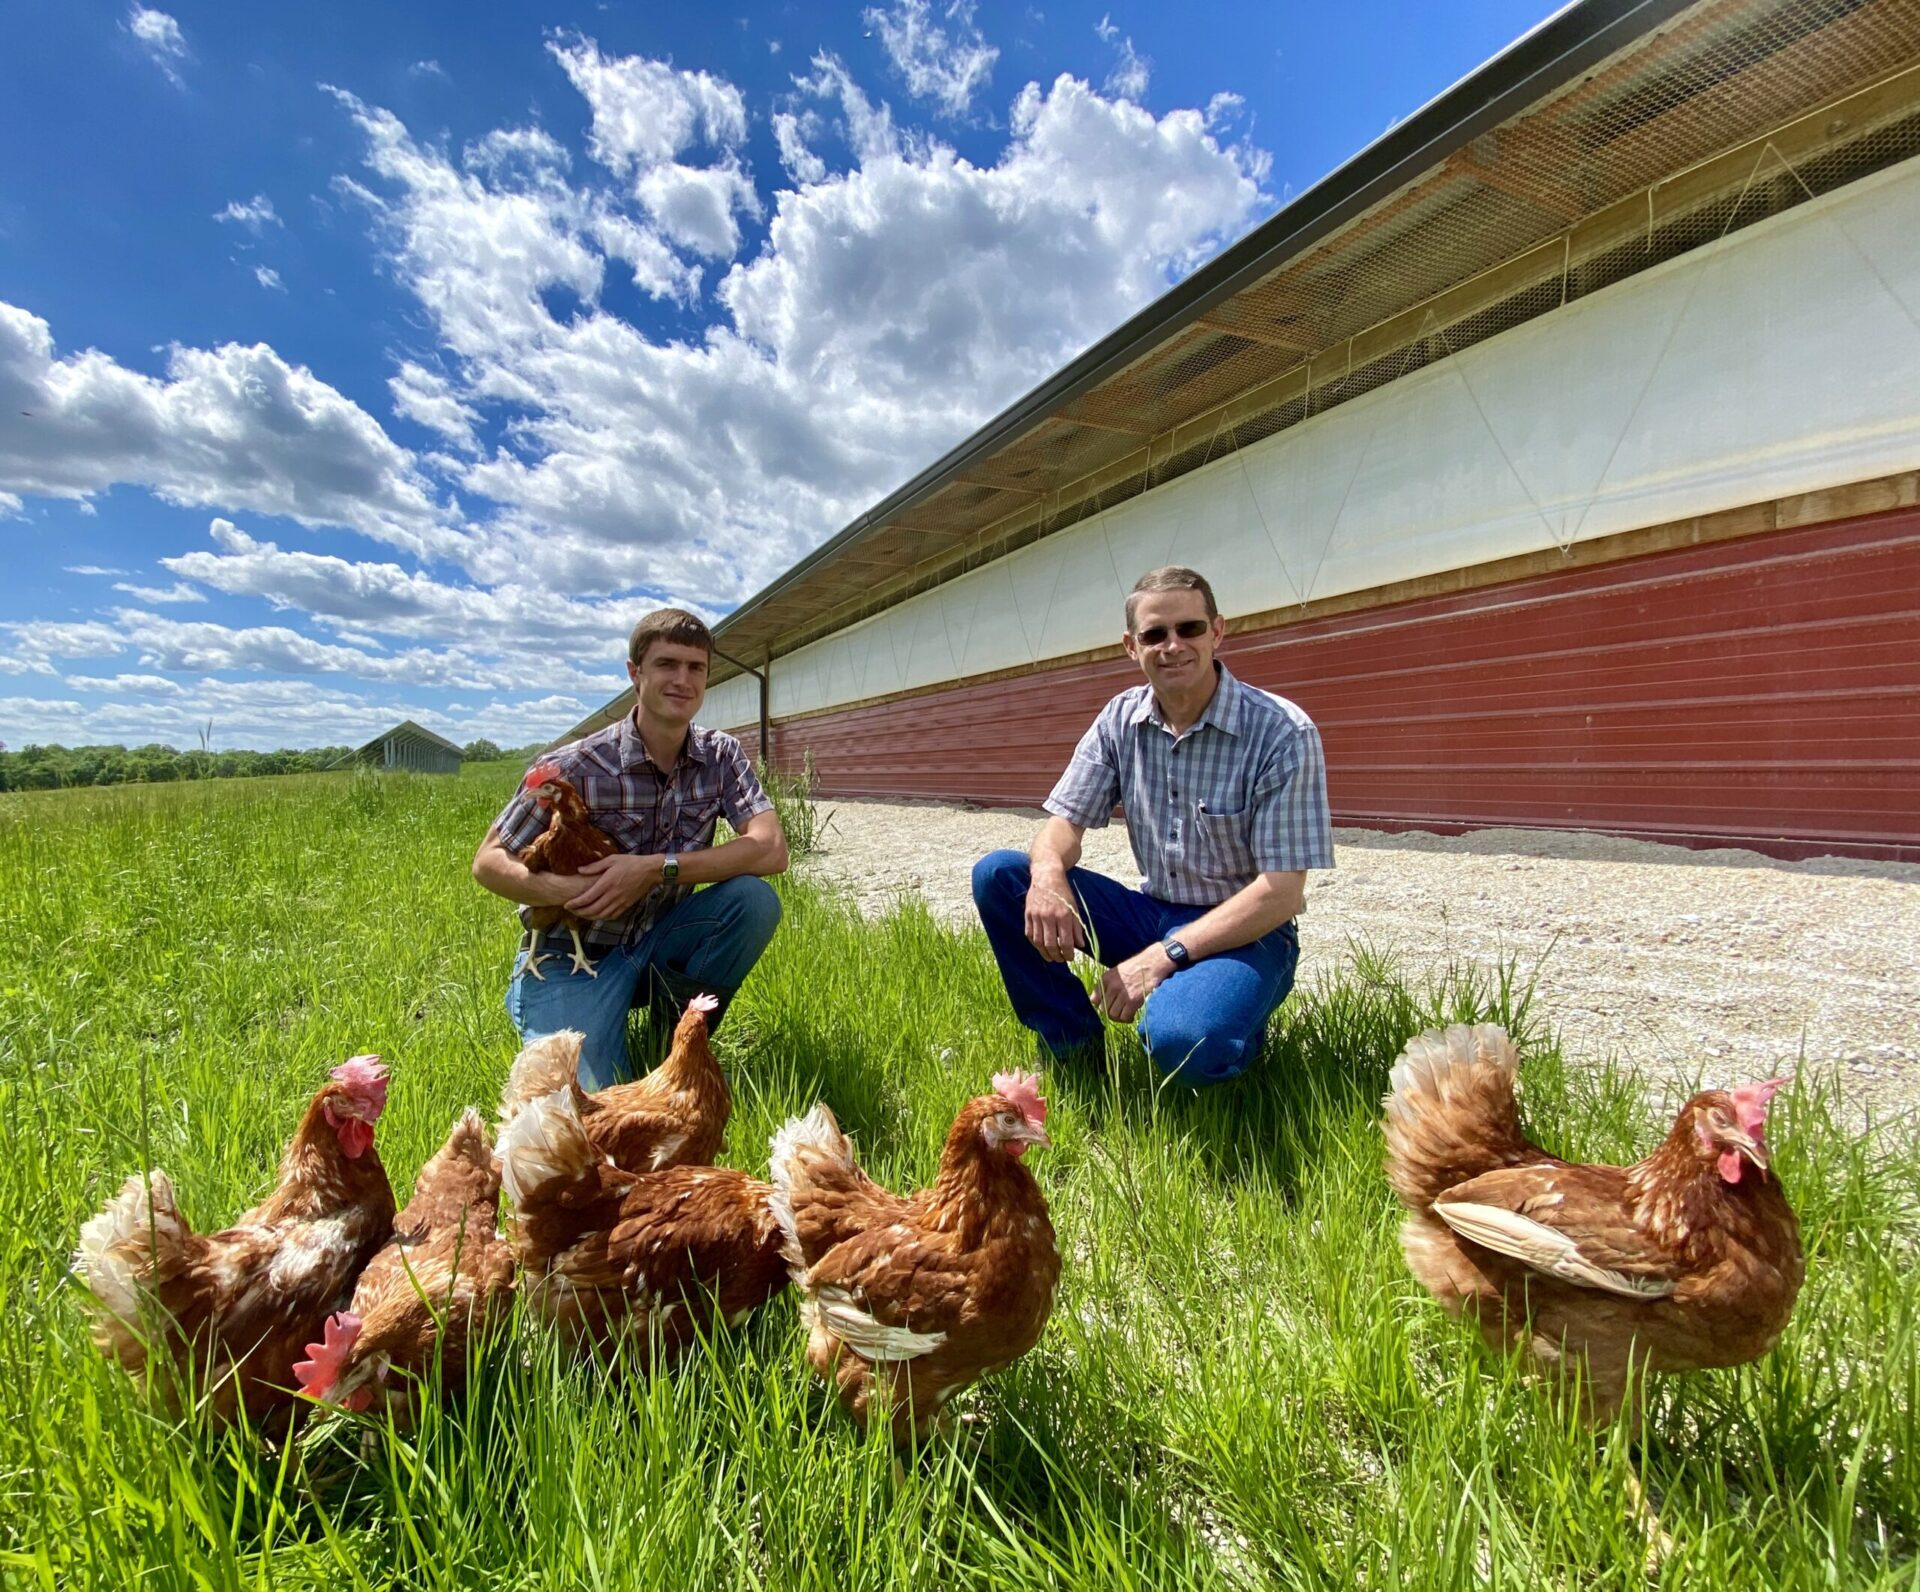 Farmers with chickens